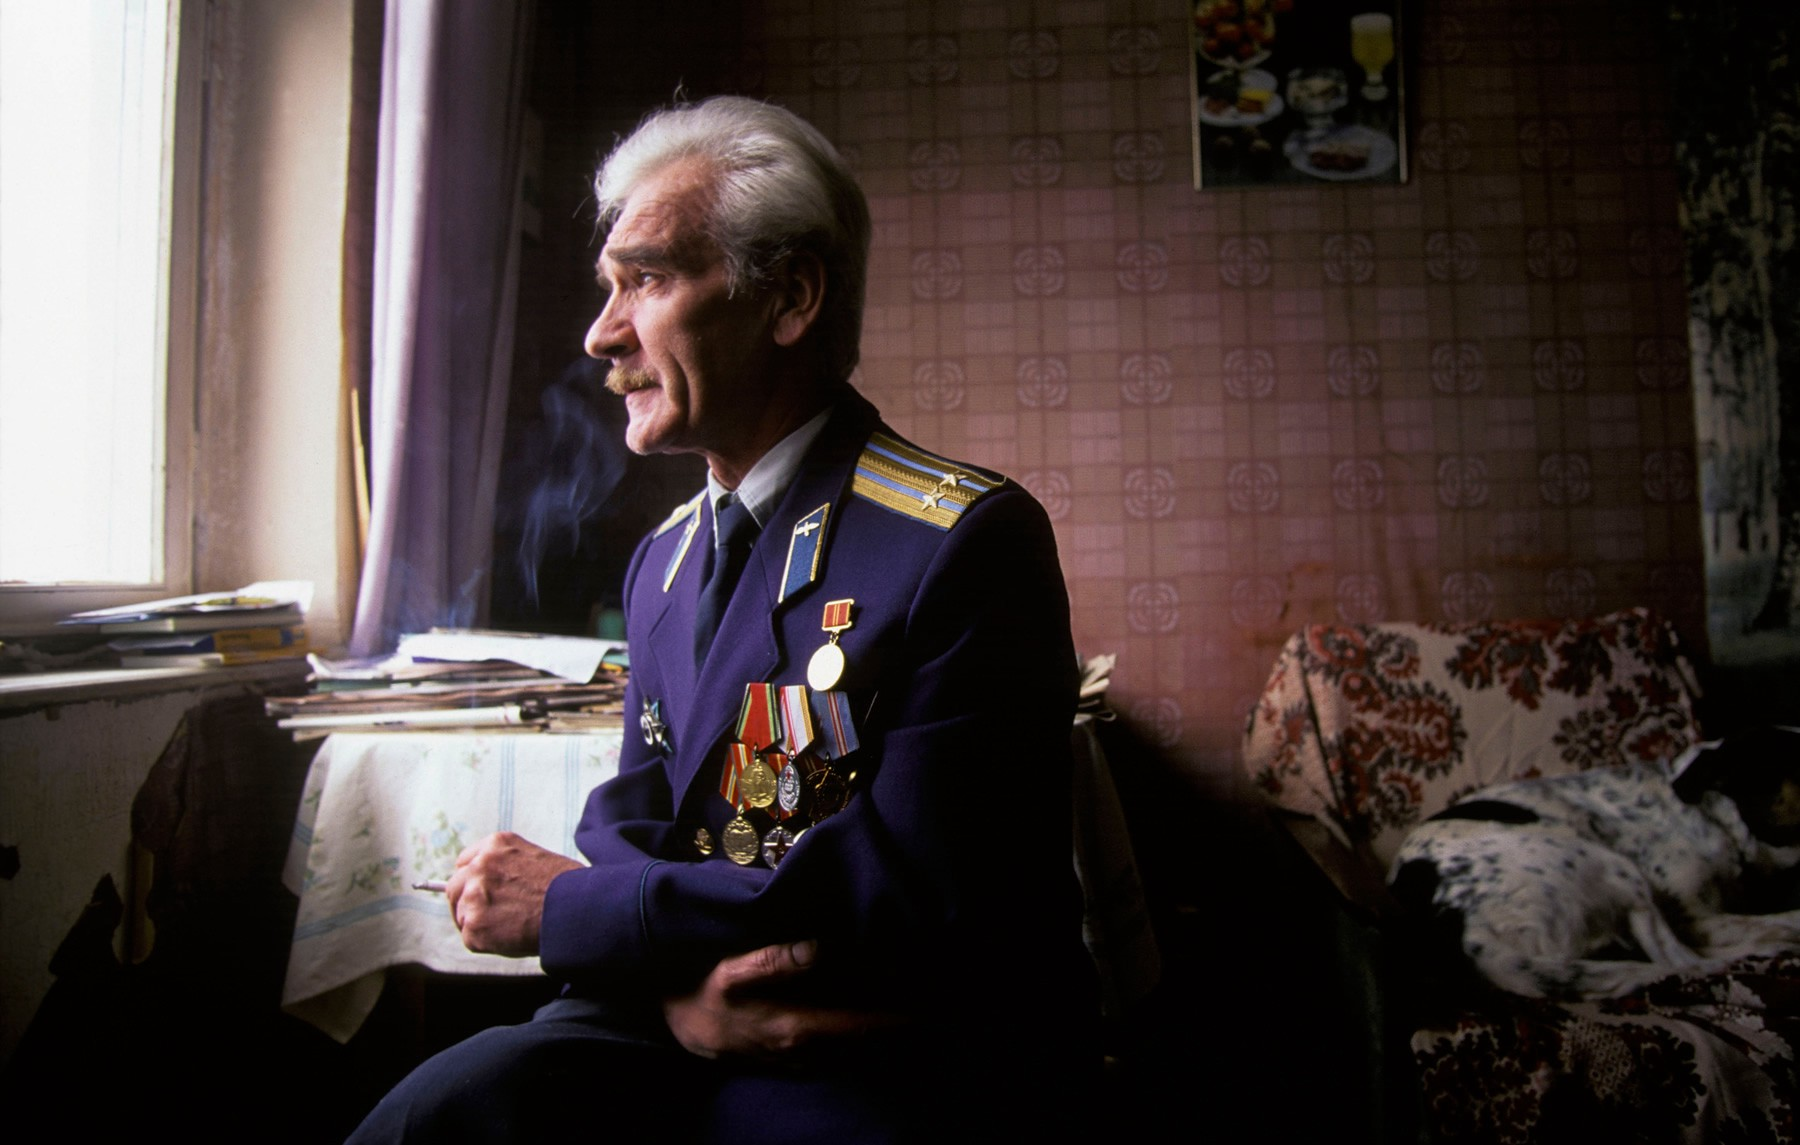 He could have saved the USSR, but instead he died in an accident, having flown into a gas-laden GAZ 85